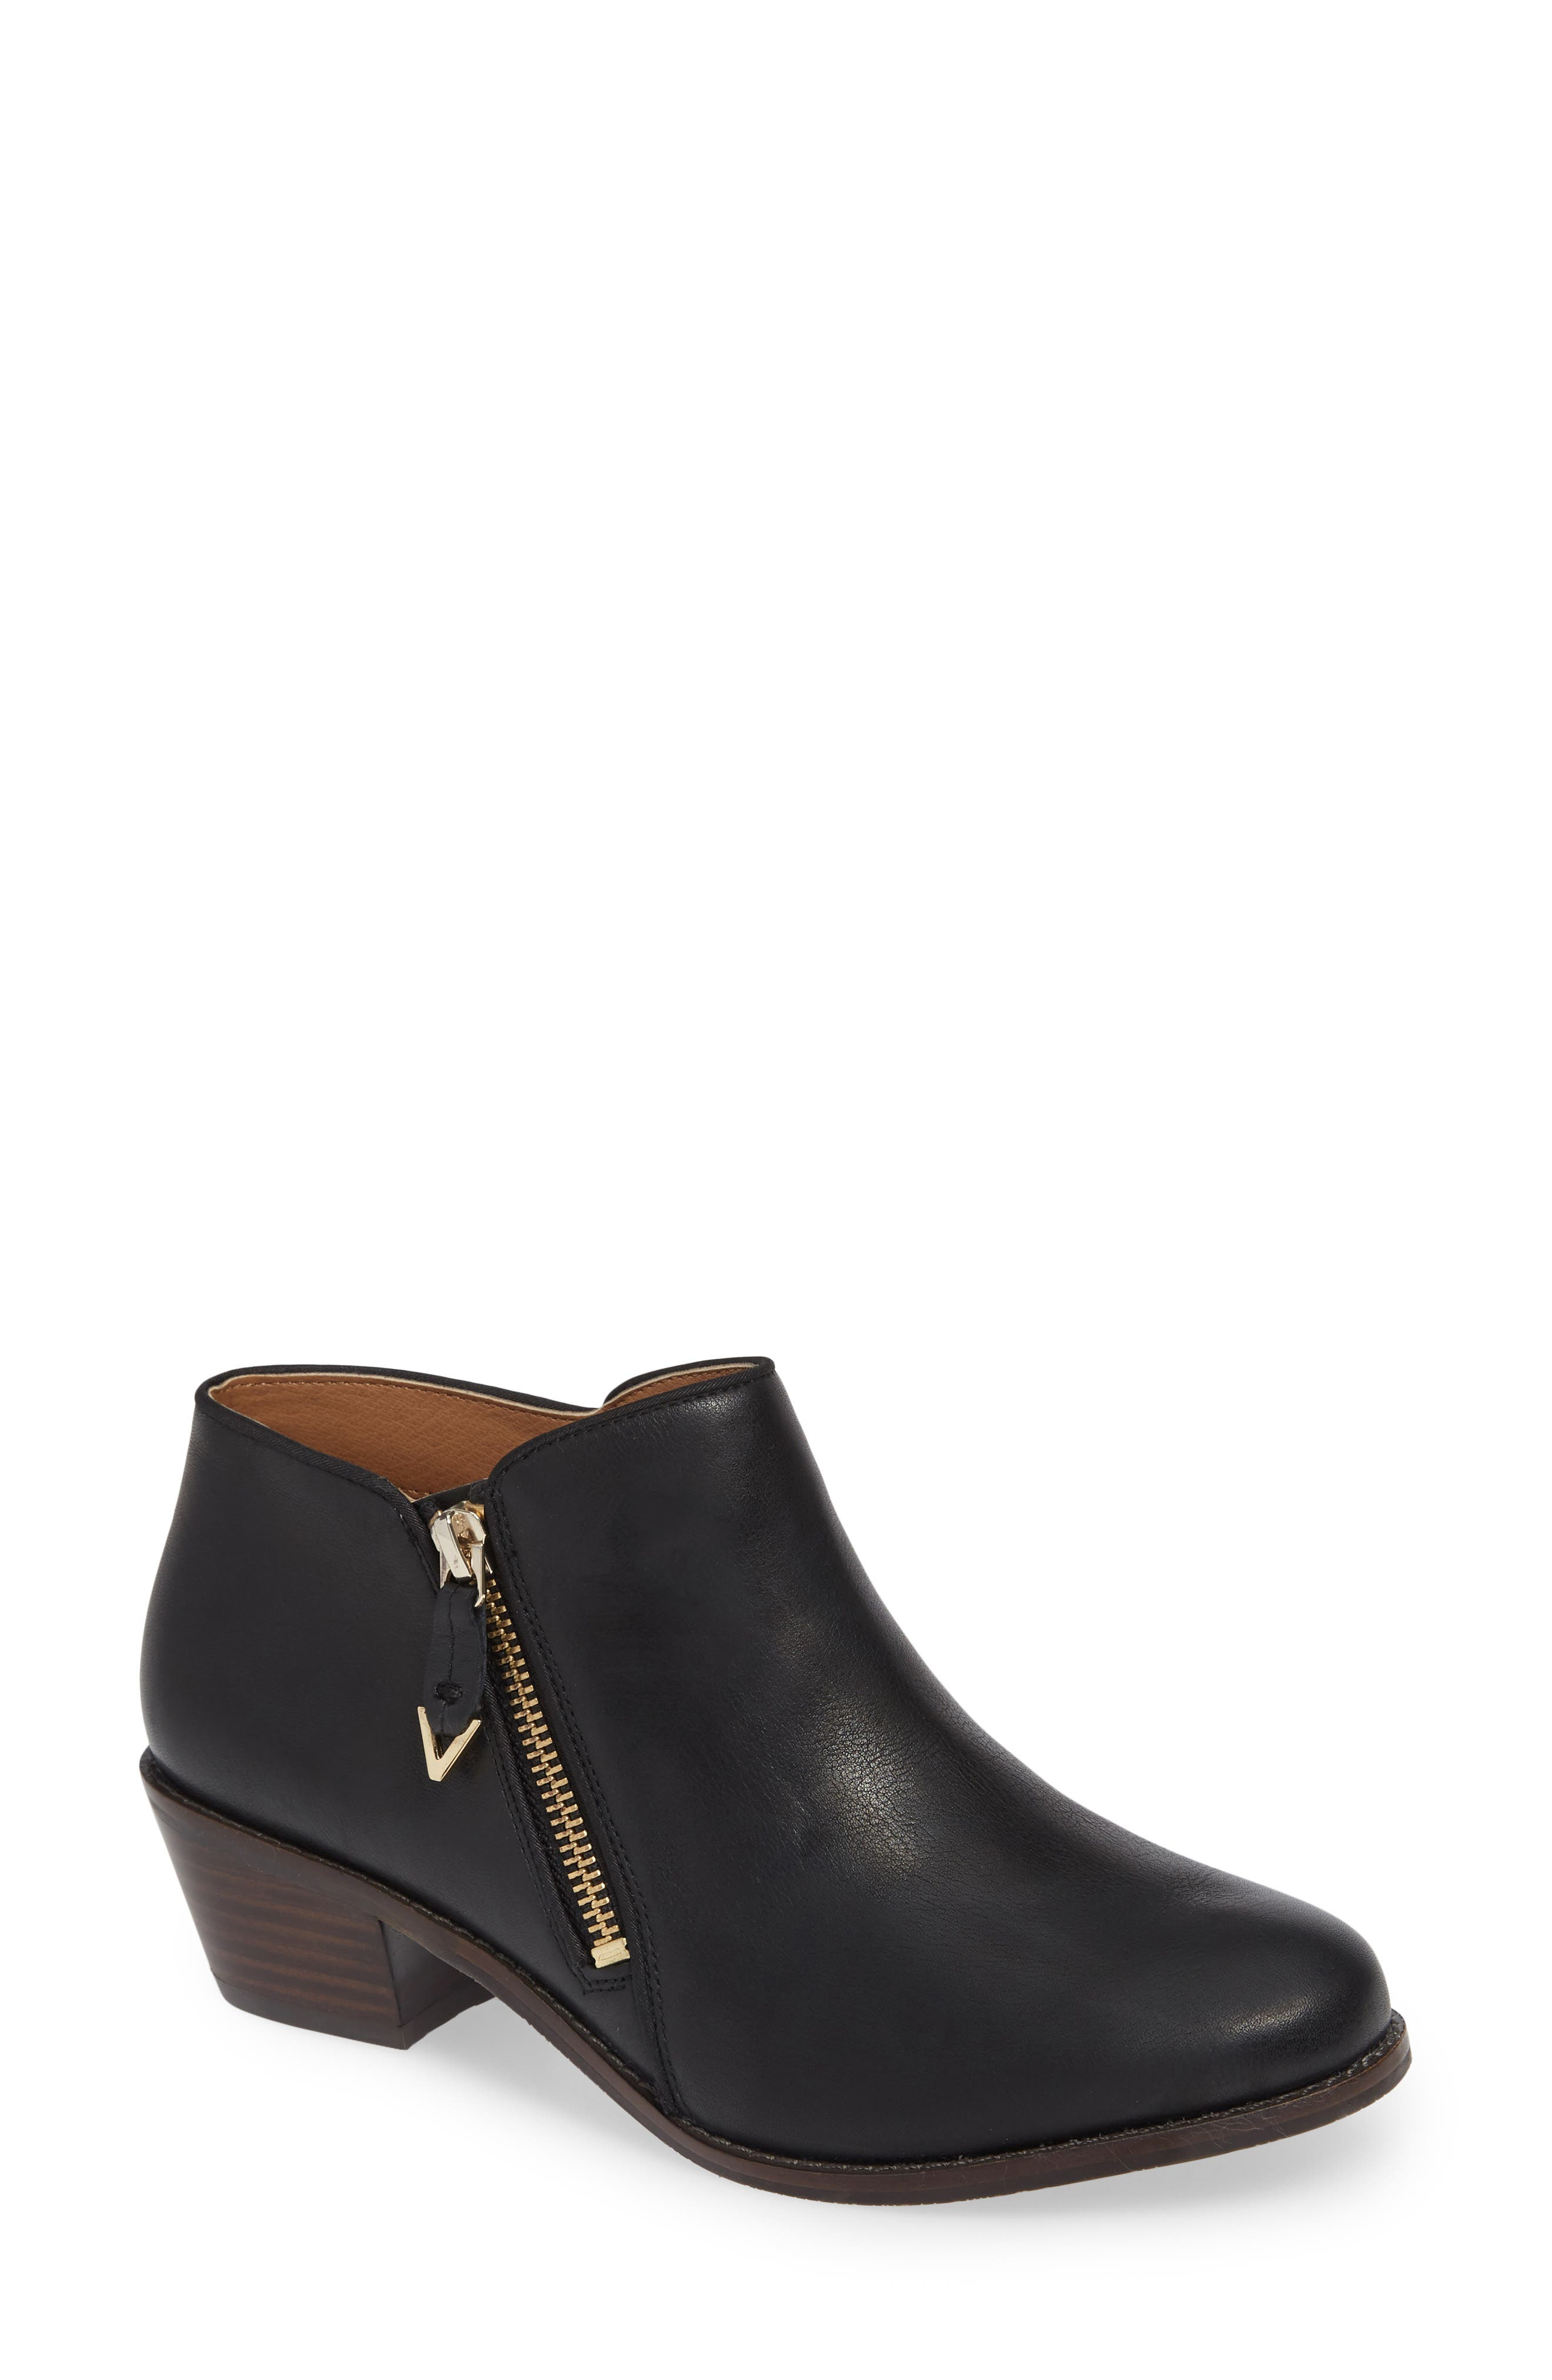 Jolene Bootie,                             Main thumbnail 1, color,                             BLACK LEATHER